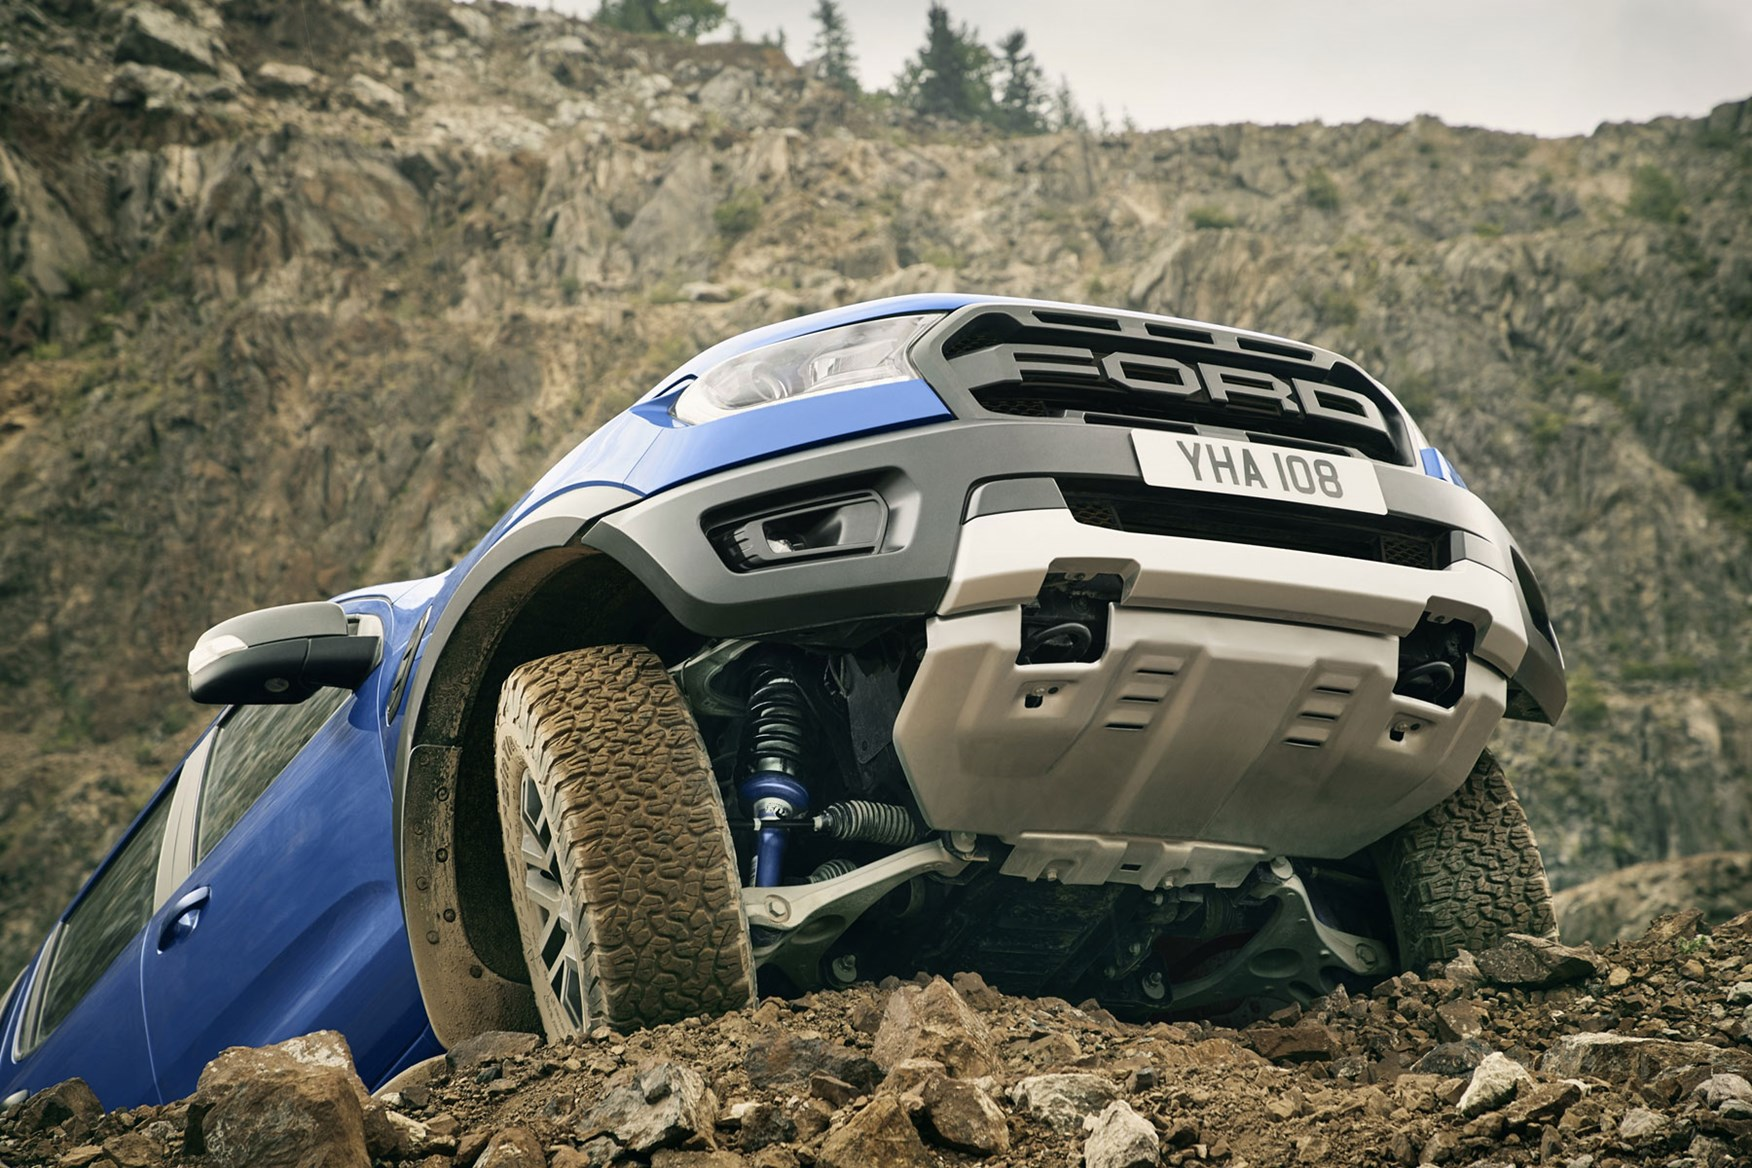 ford ranger raptor full details pictures pricing  video   high performance pickup